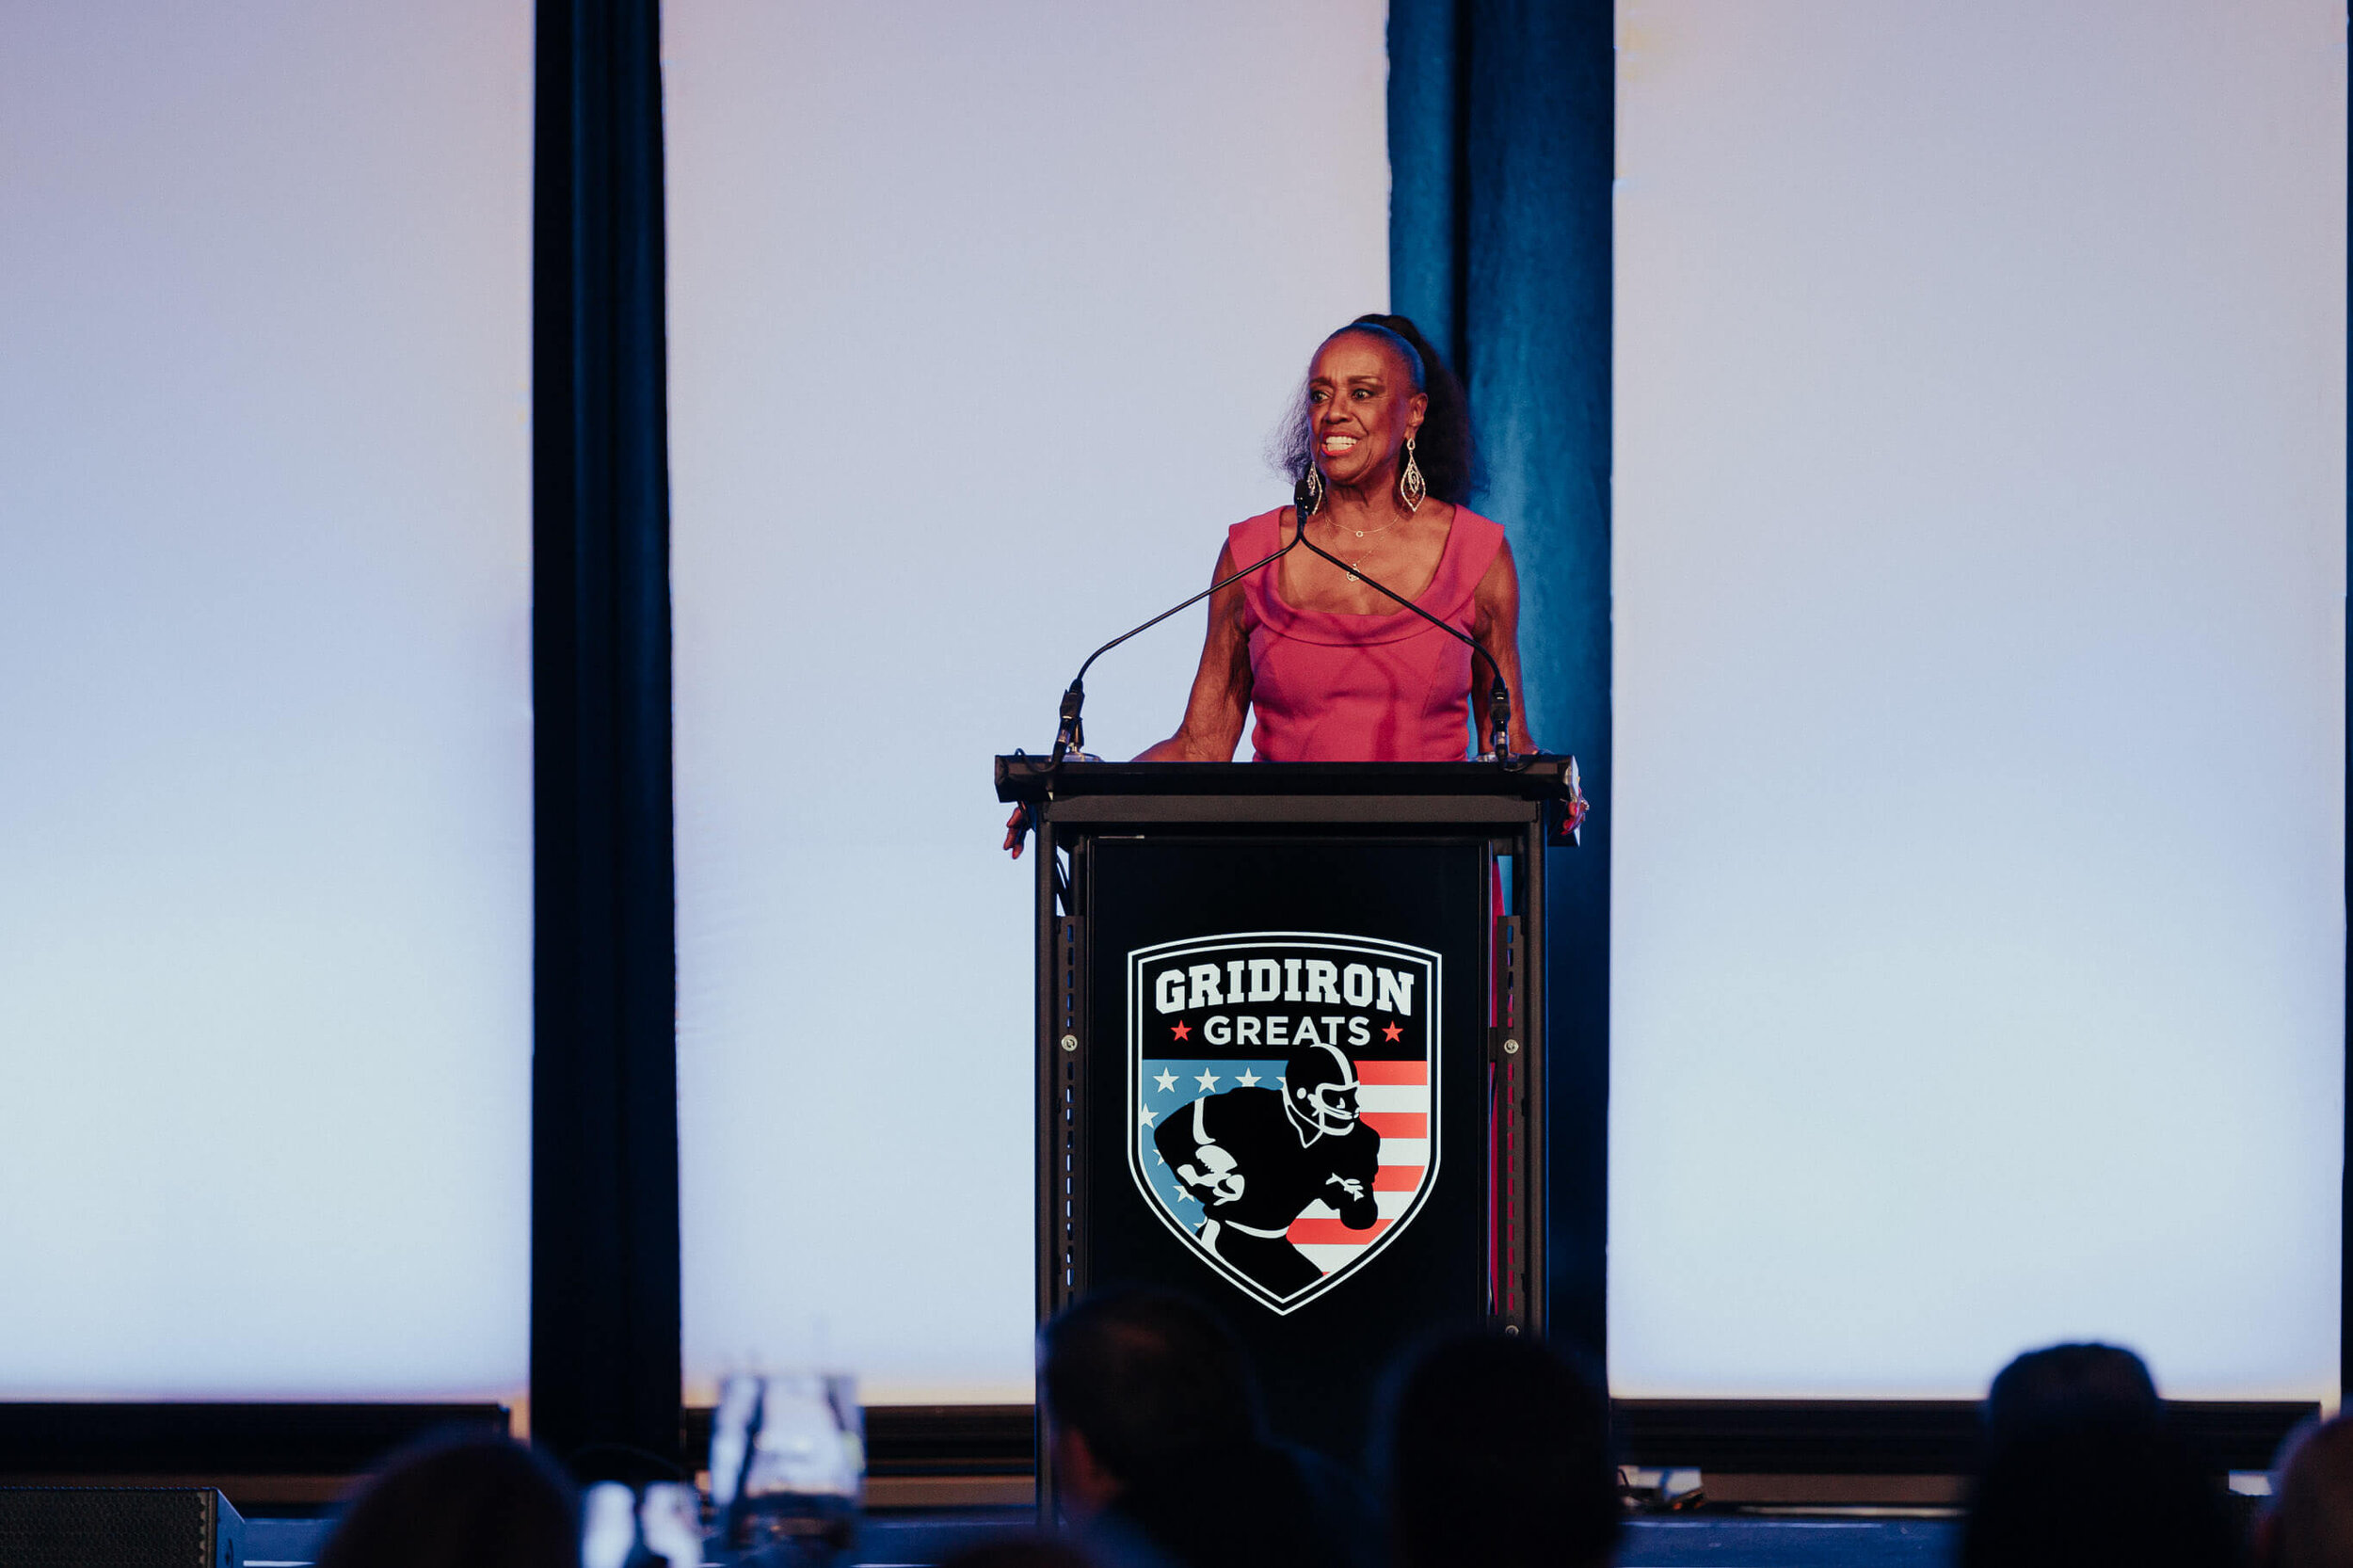 Chicago Event Photography_Gridiron Greats Assistance Fund Hall of Fame 2019_15.jpg